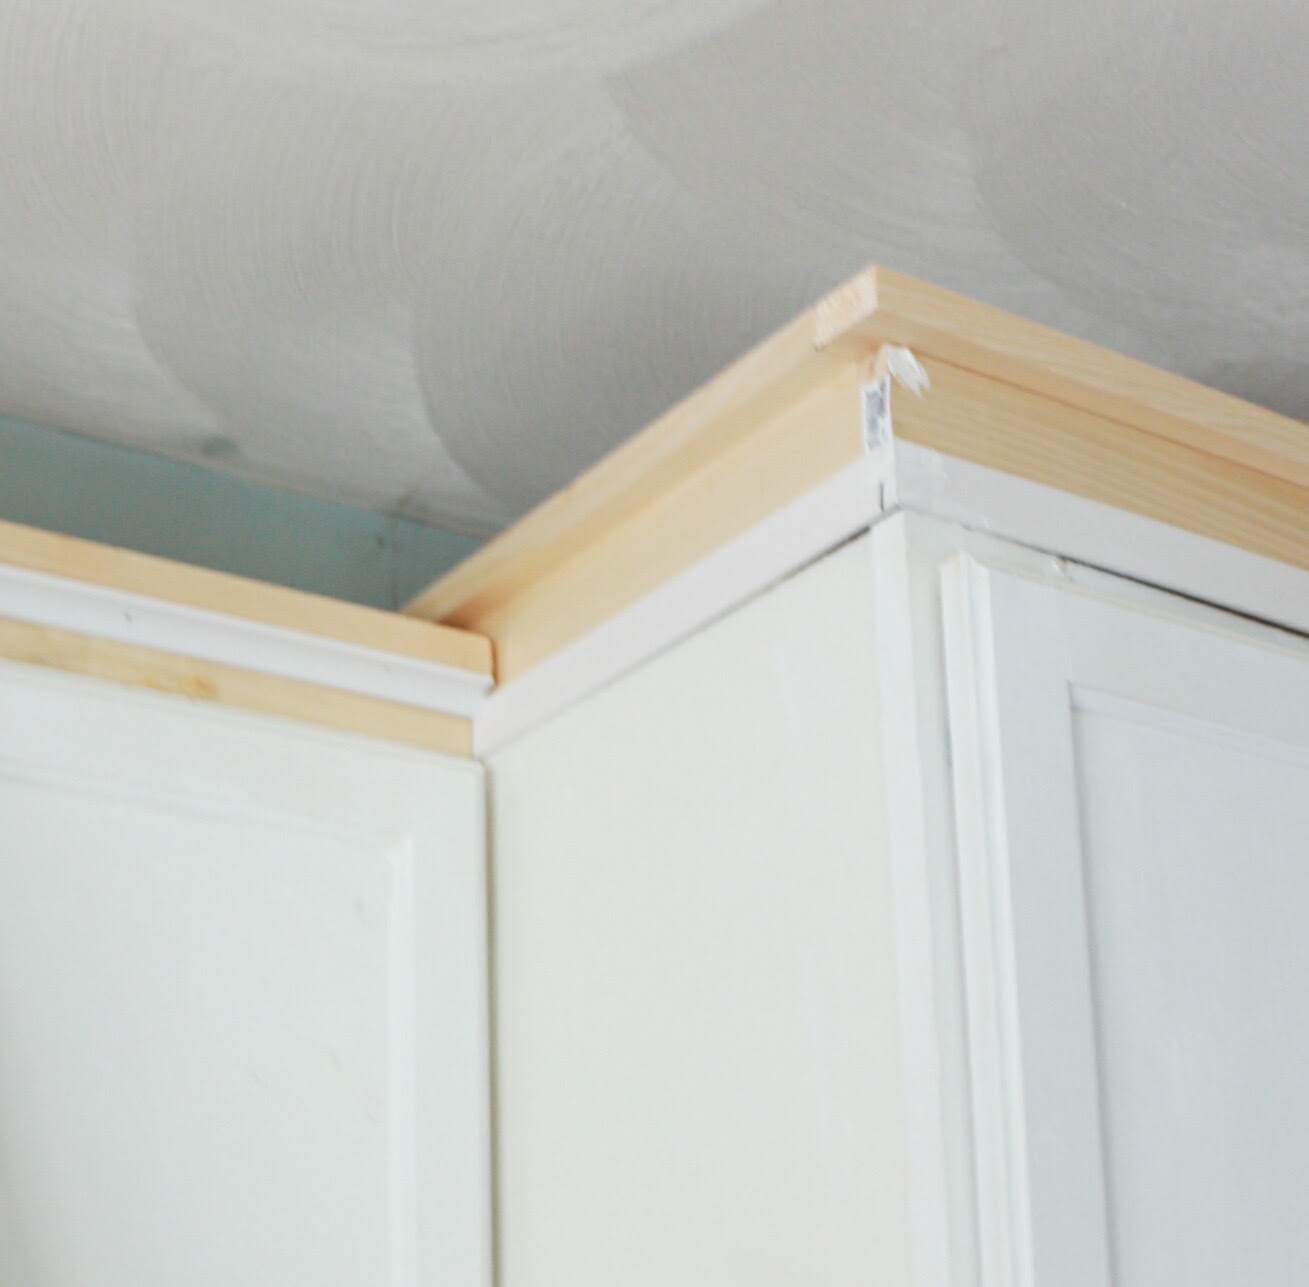 Kitchen Cabinets Moulding: My DIY Kitchen: Cabinet Crown Molding, How To Fake The